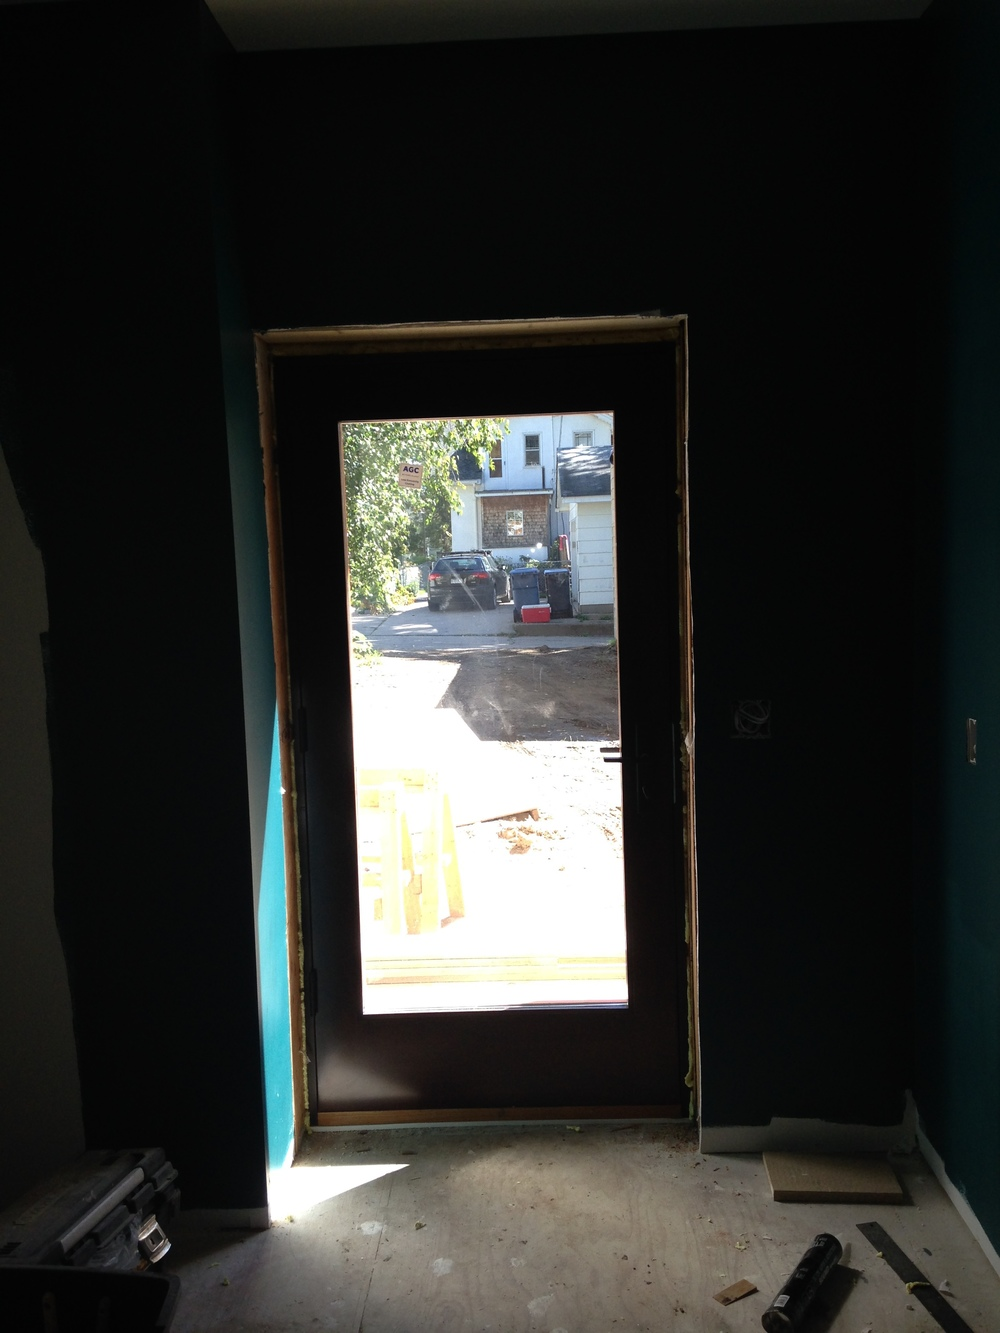 Looking out from the mudroom